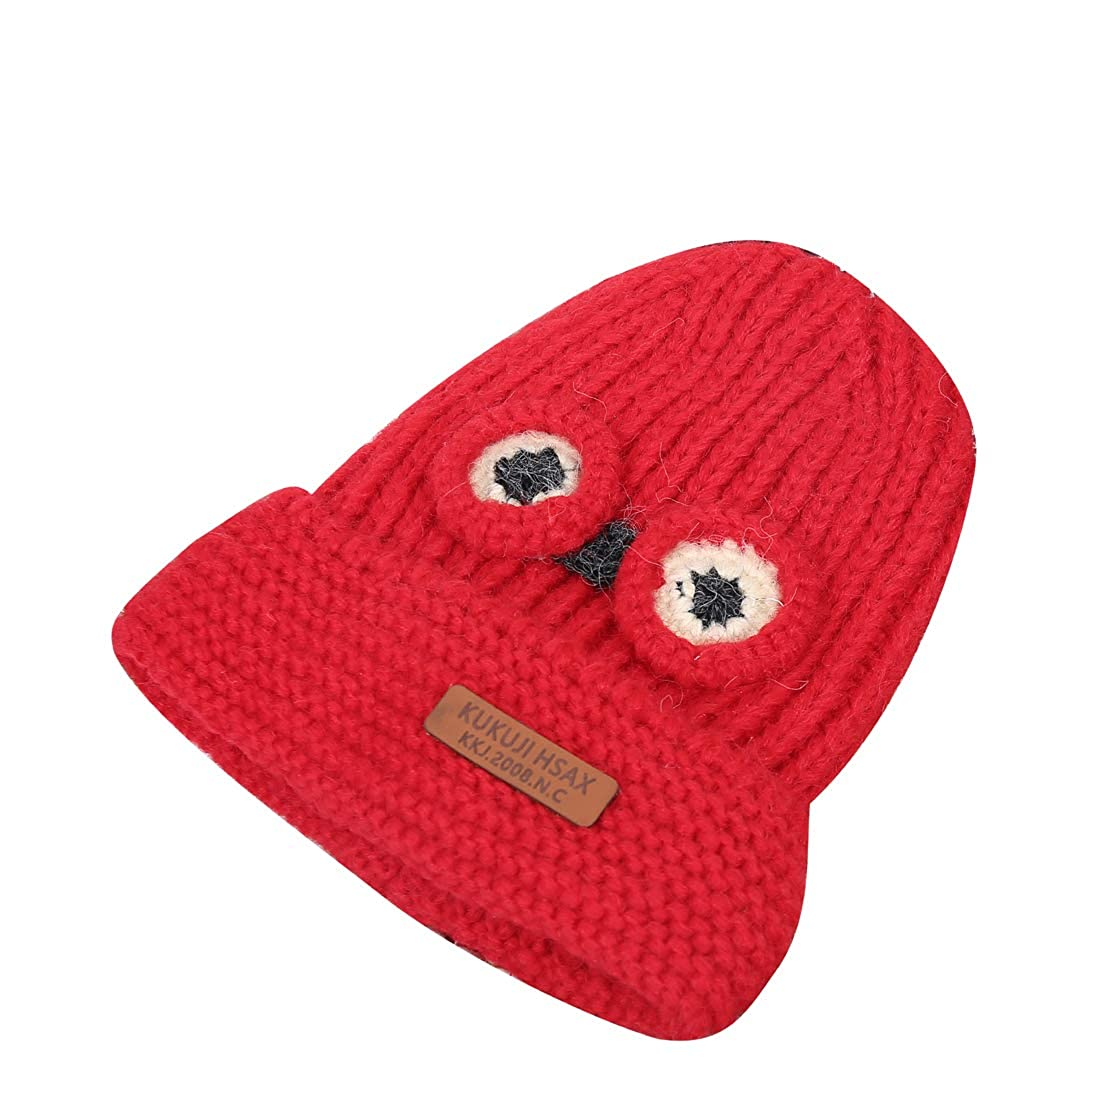 ACVIP Little Kids Big Eyes Knit Cold Weather Cotton Lining Skull Cap